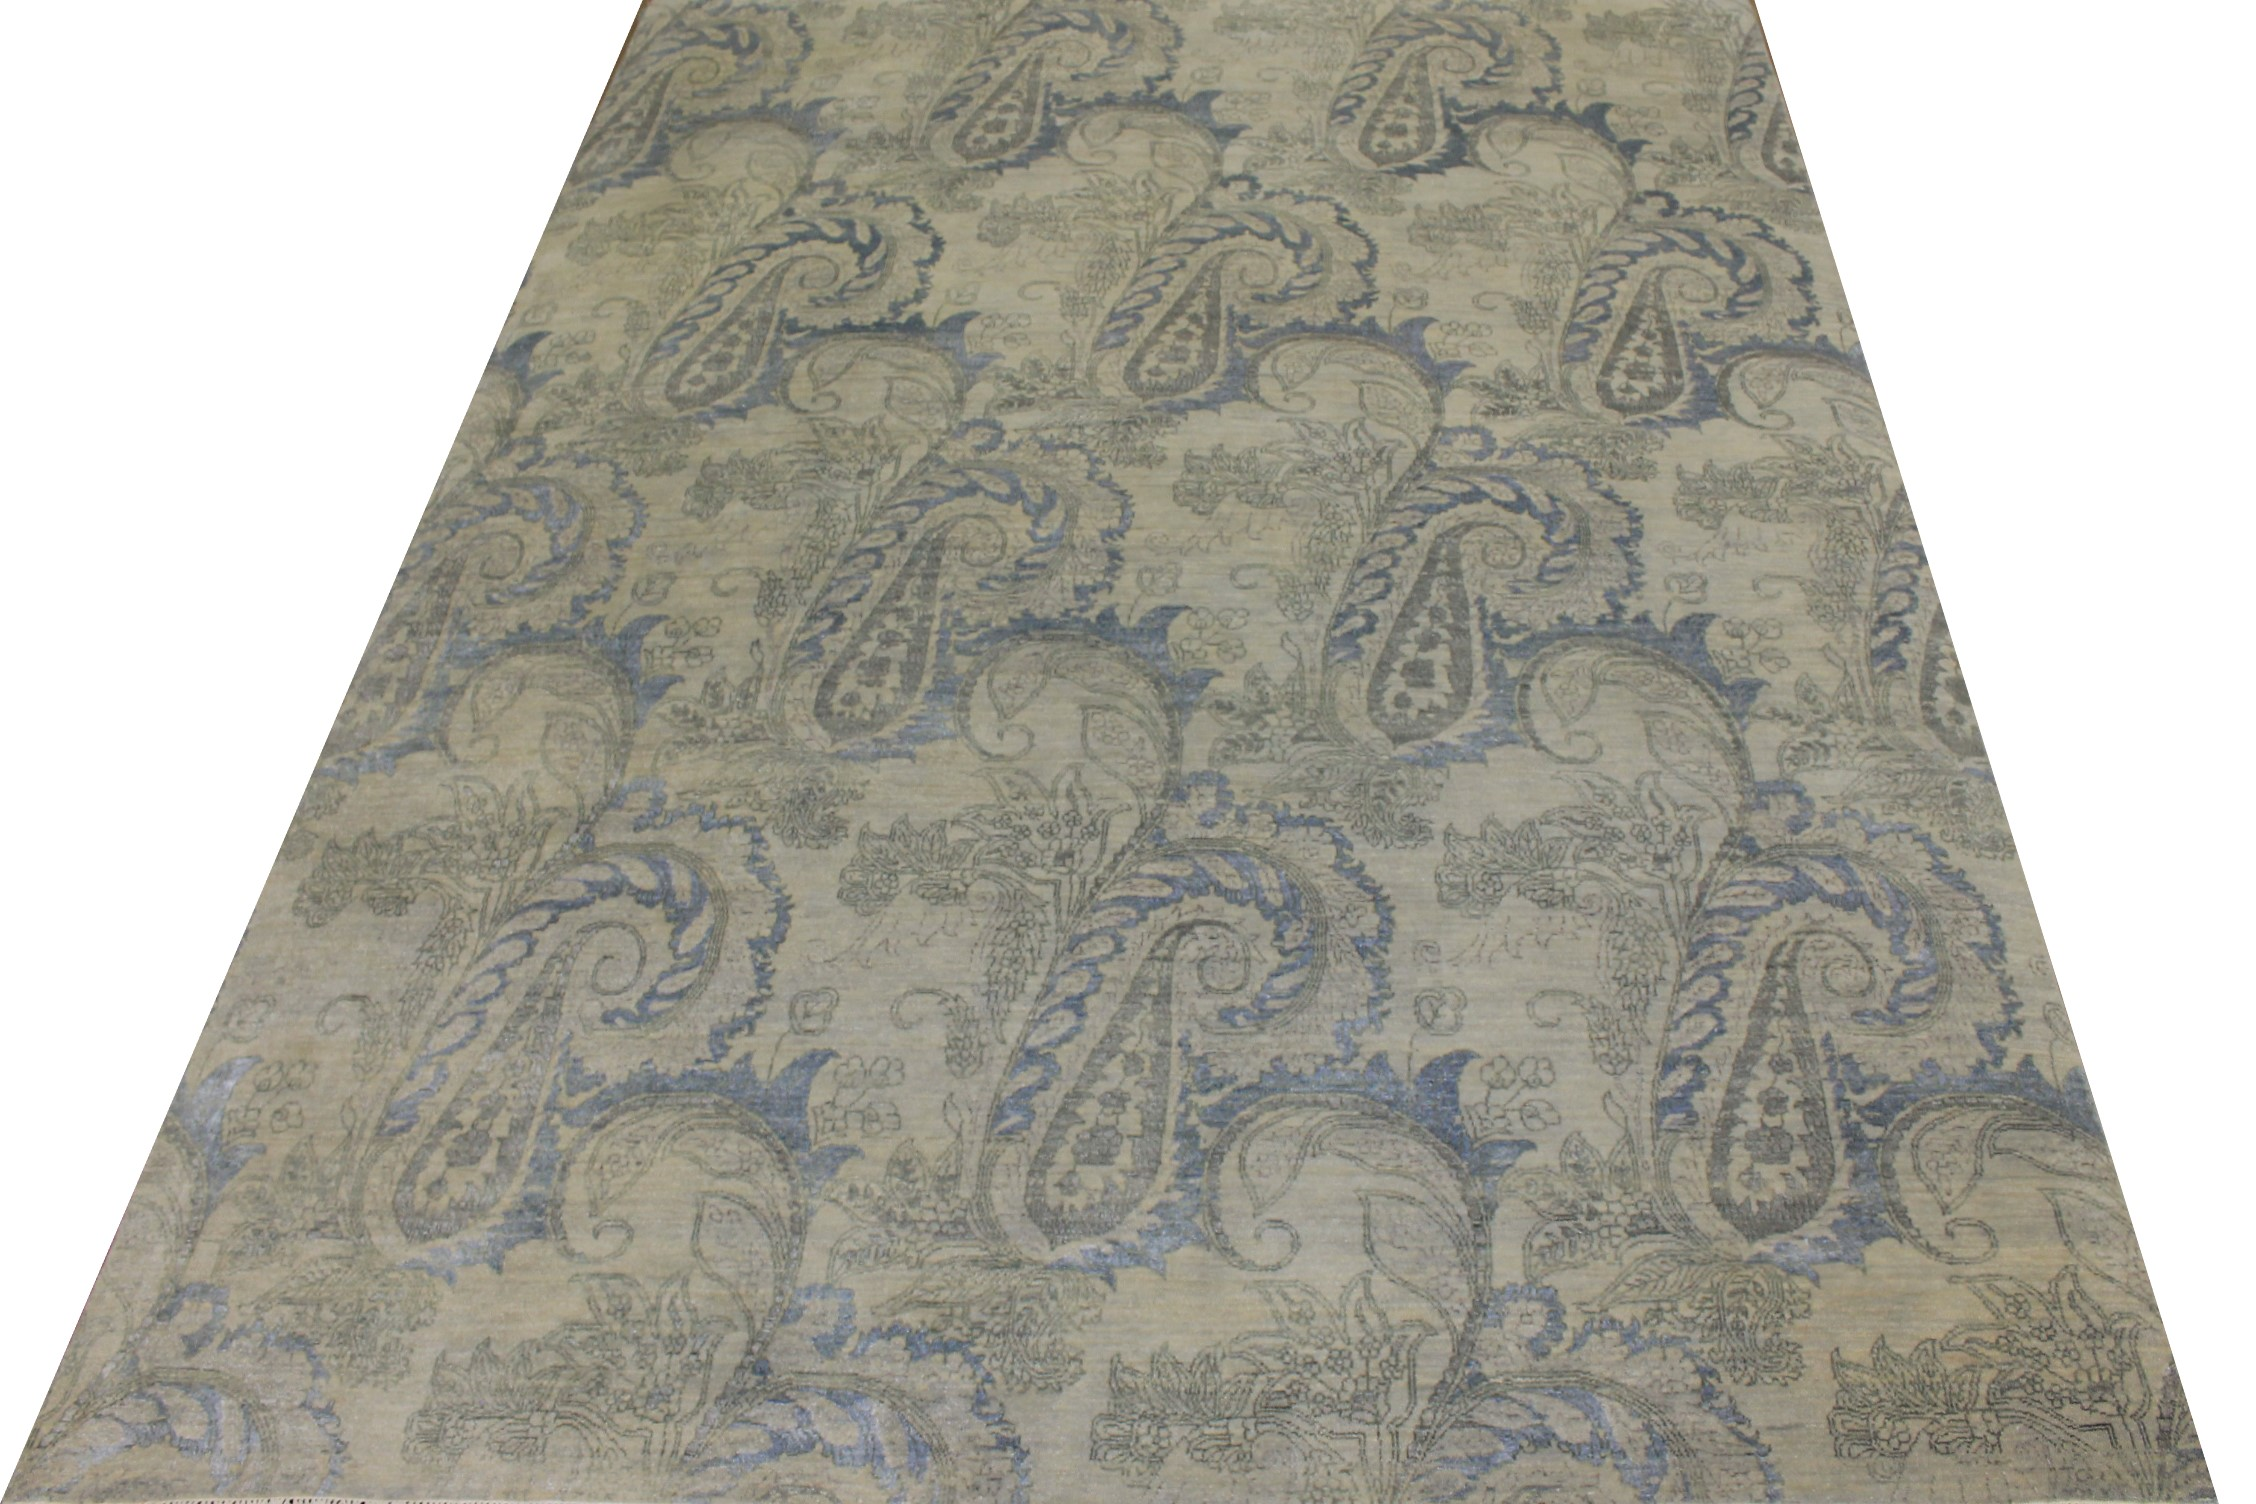 9x12 Contemporary Hand Knotted Wool Area Rug - MR17419